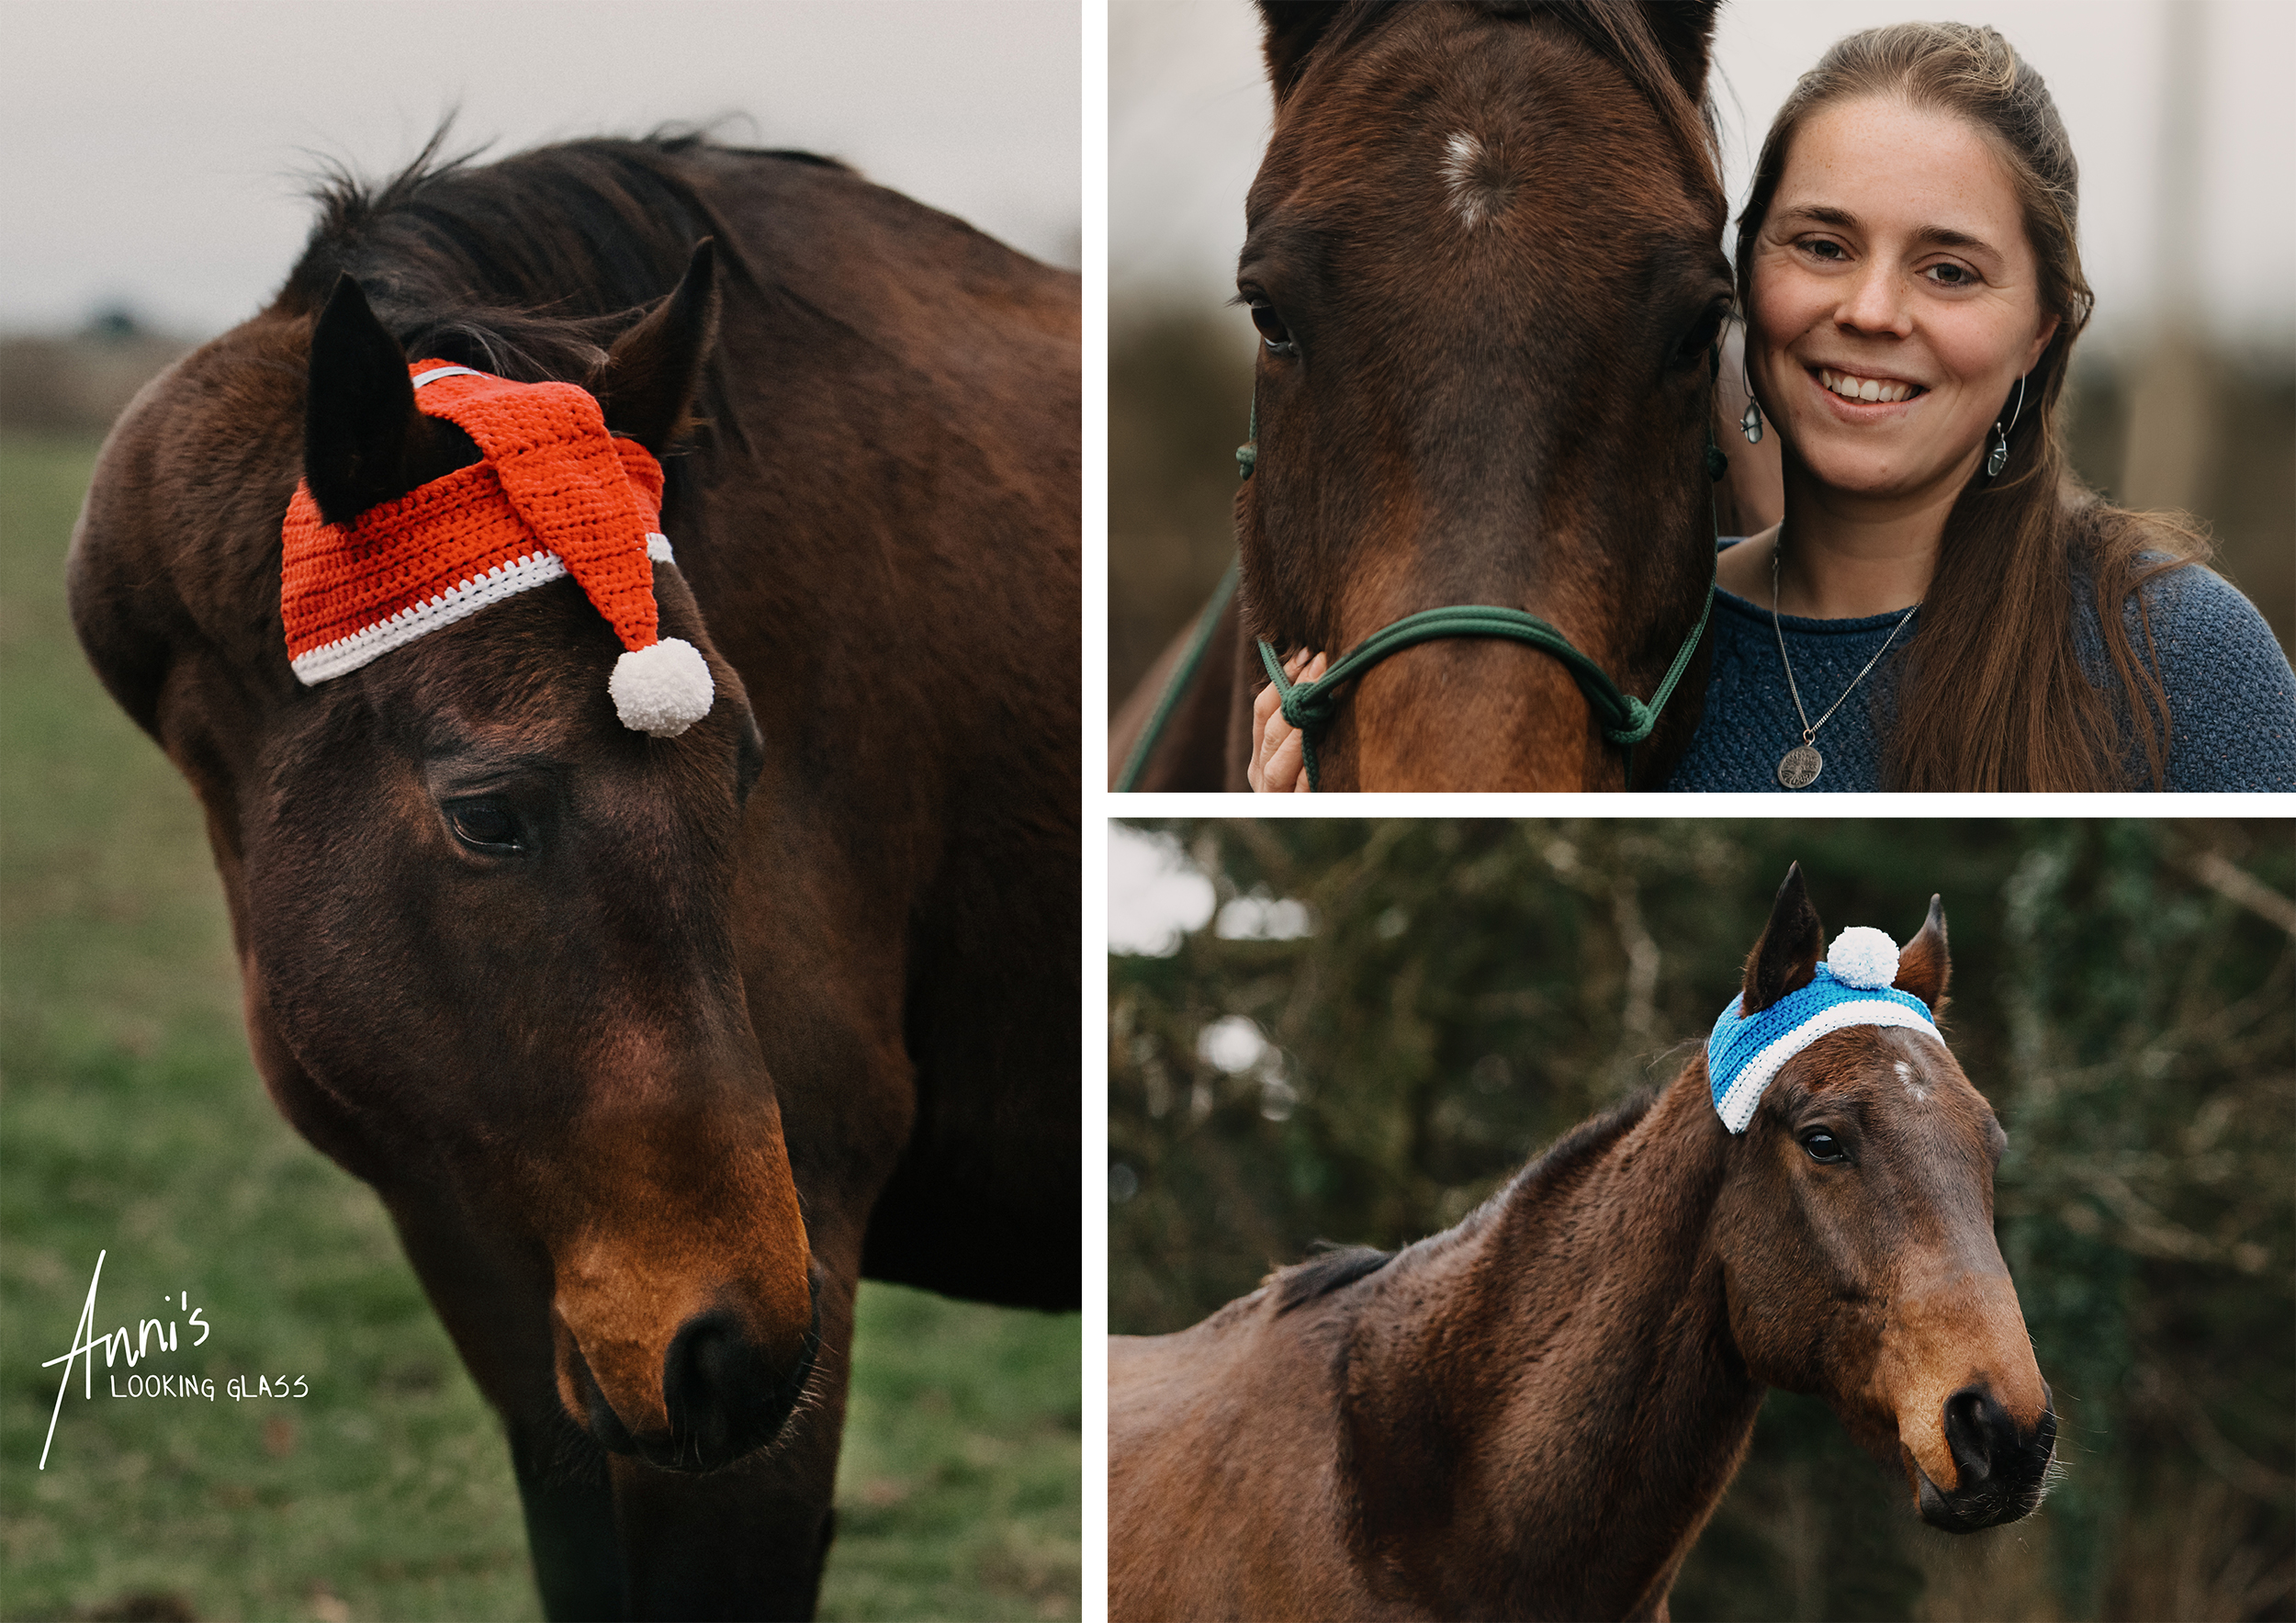 Equine photographer in Loughborough and Leicester: A collage with three images of a brown horse and a young girl with brown hair at Lee Valley Equestrian Centre in Co. Cork, Ireland. 12th March, 2019.